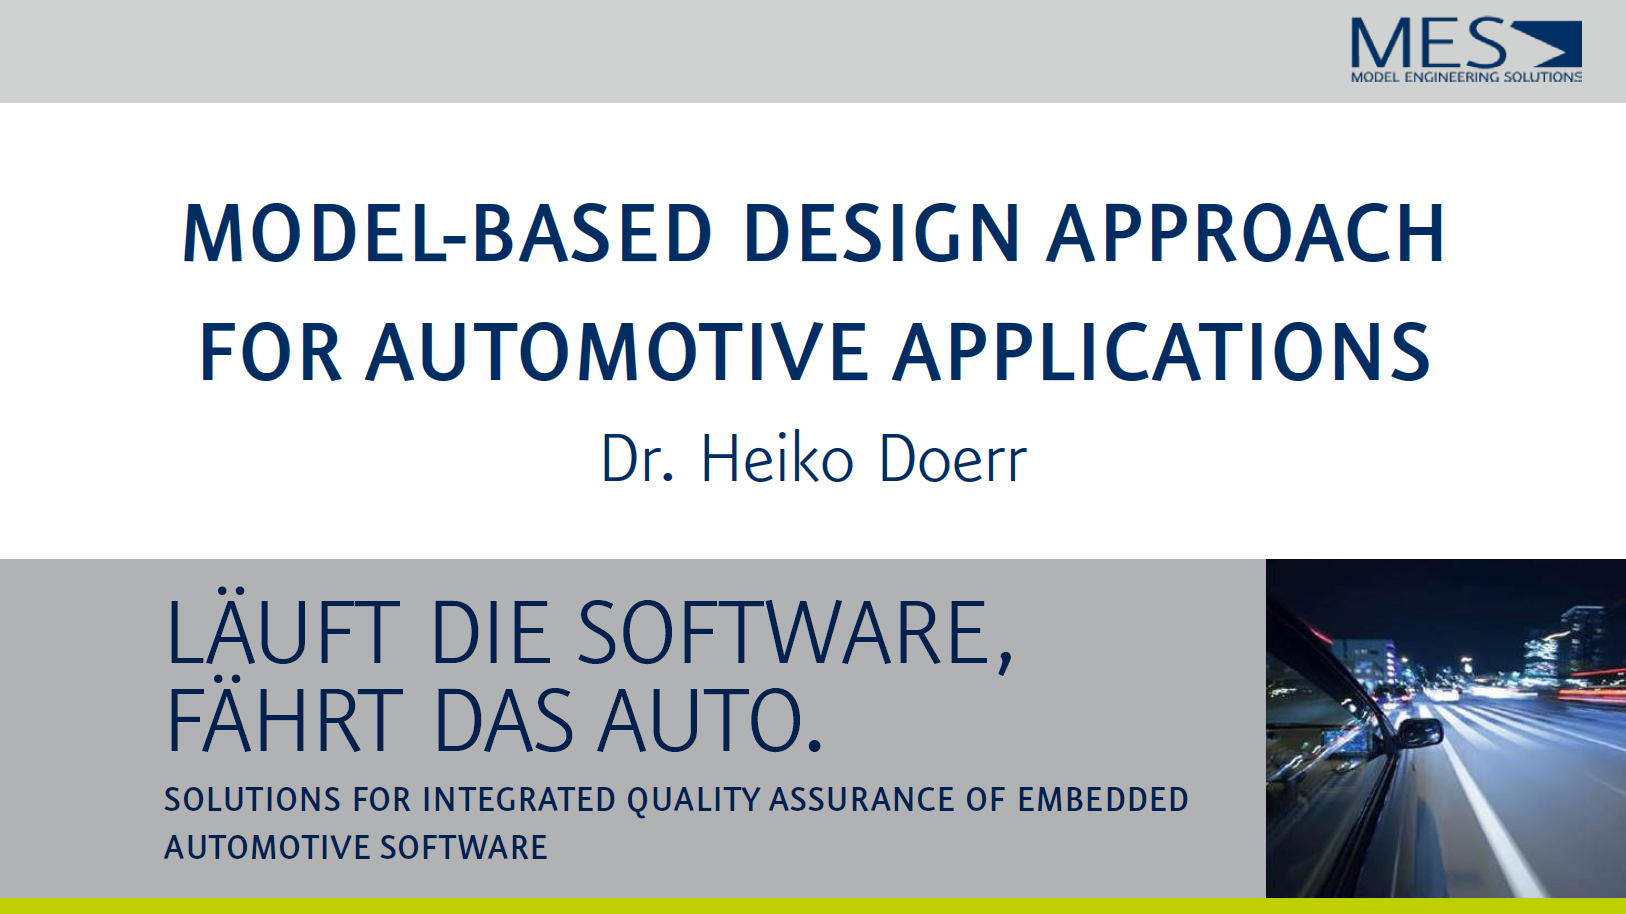 Presentation on model-based design approach for automotive applications